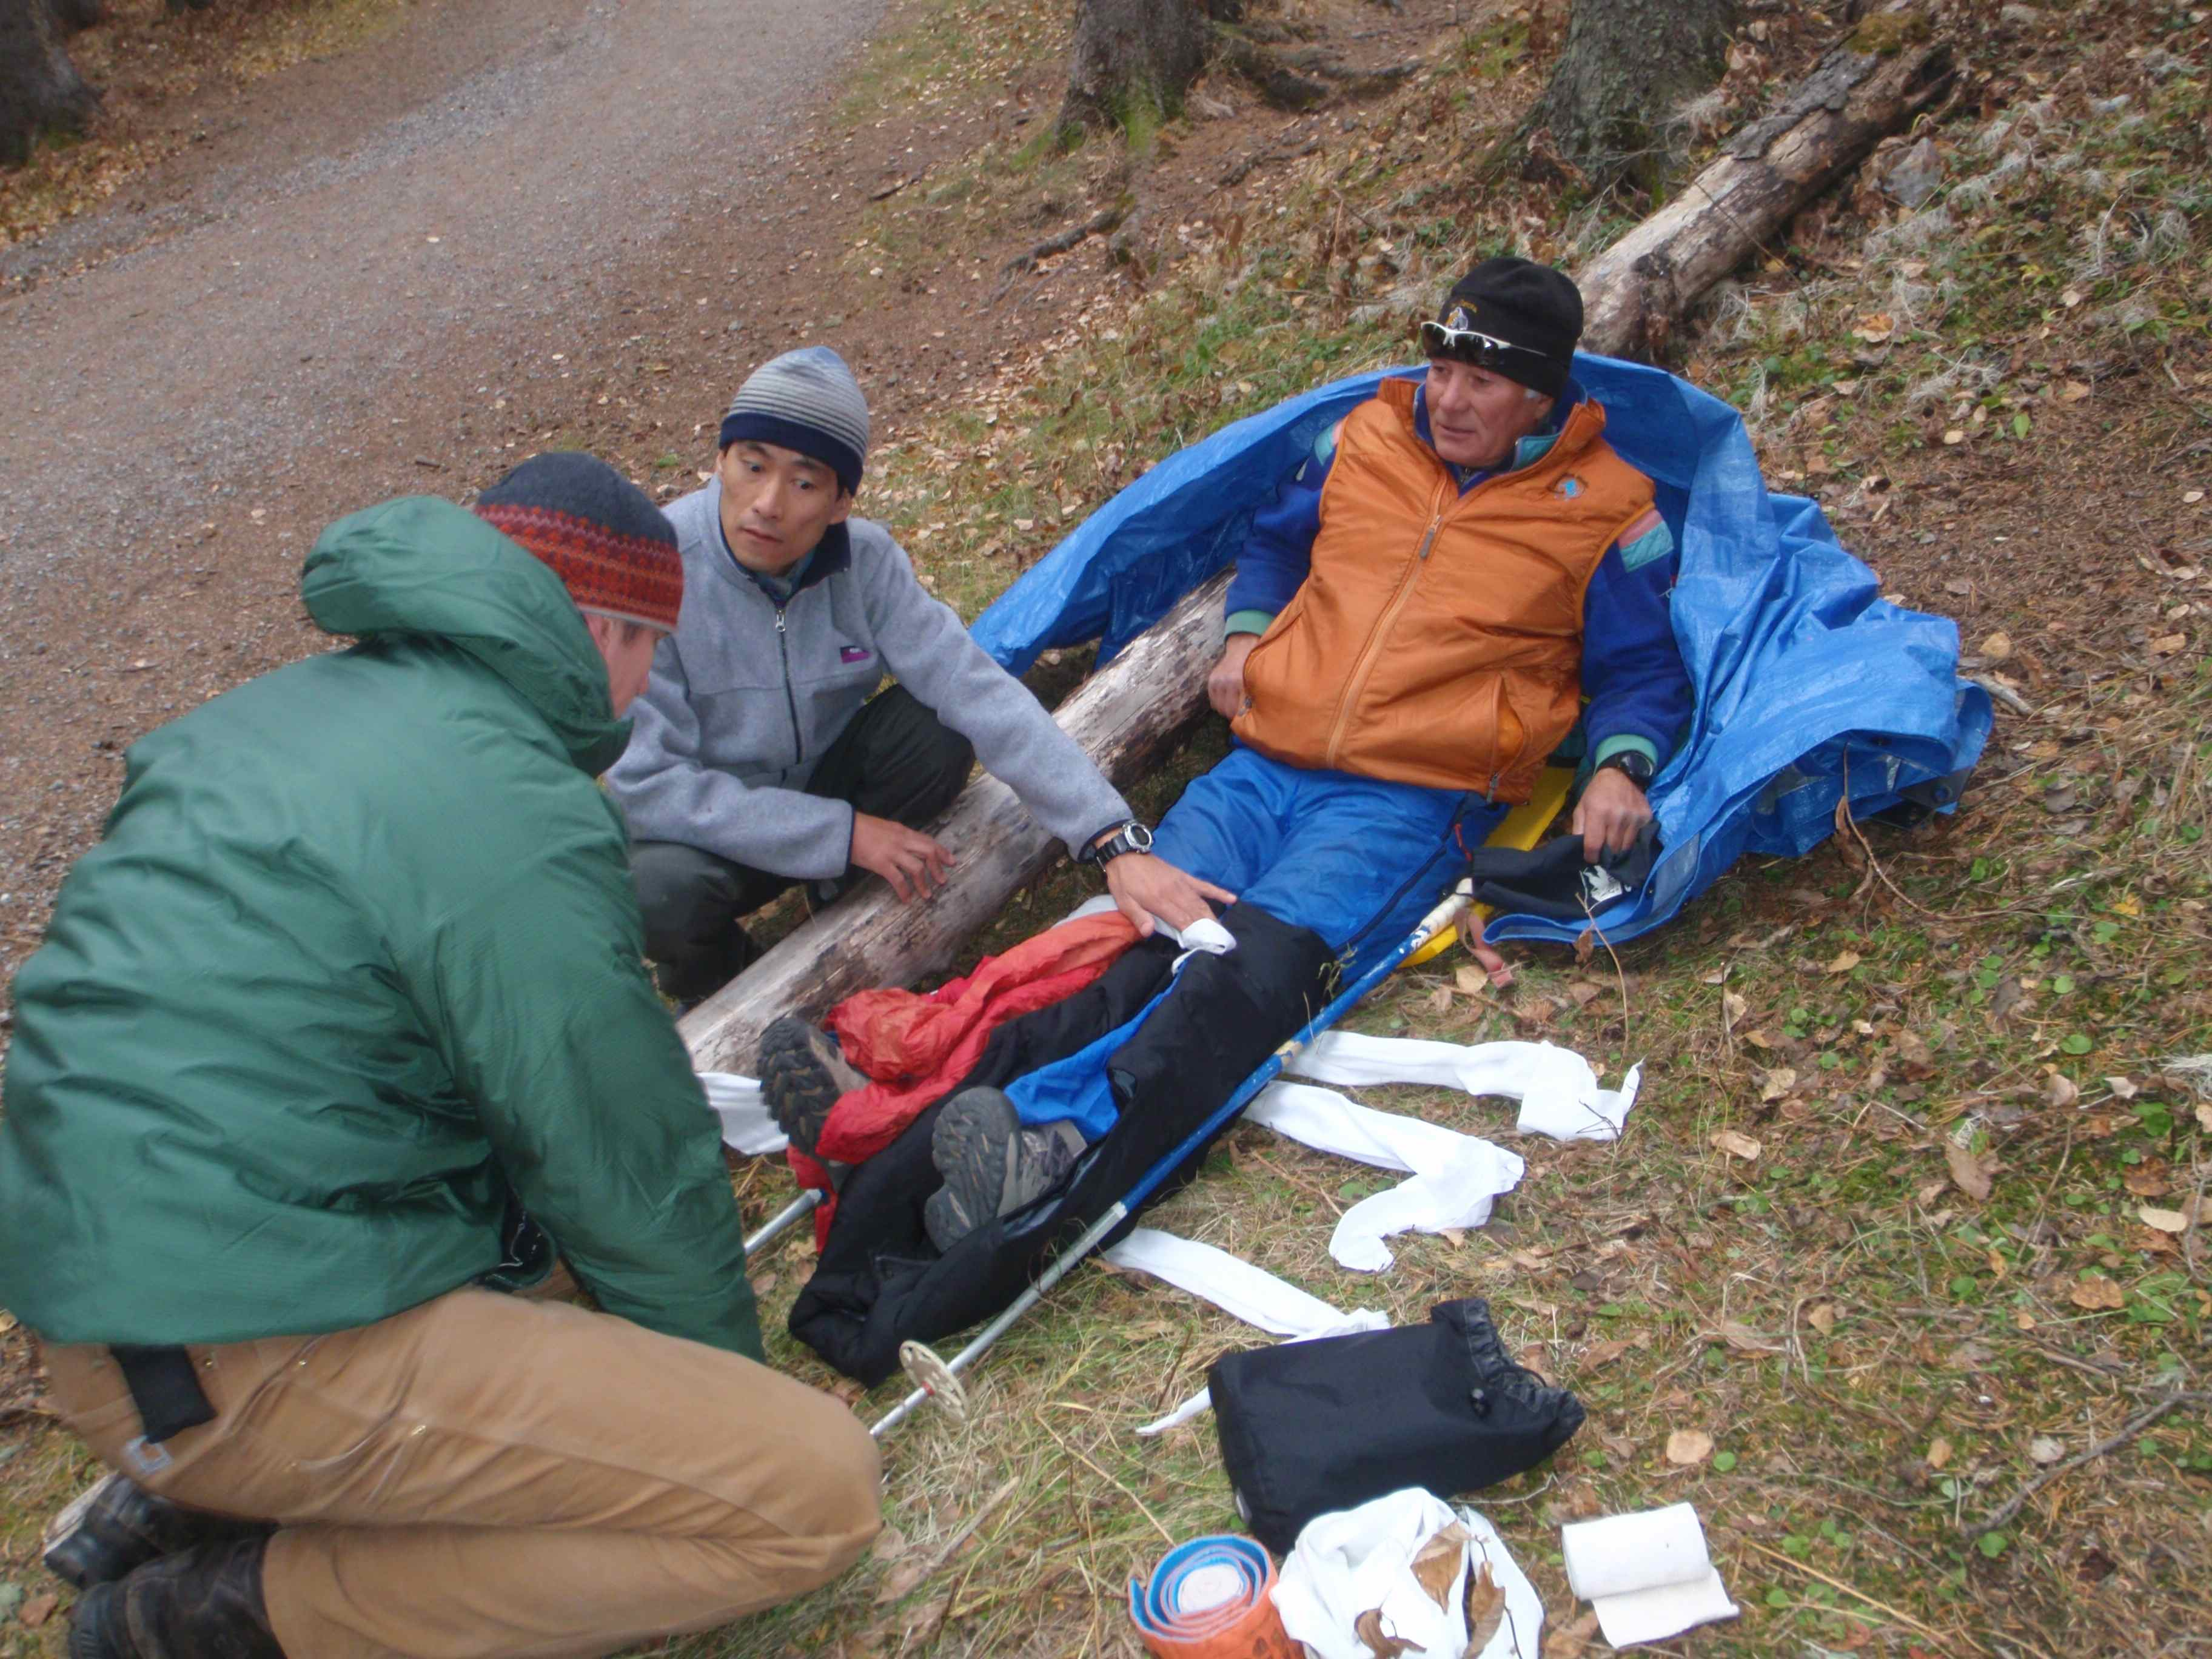 Wilderness First Aid Courses Alberta Canada